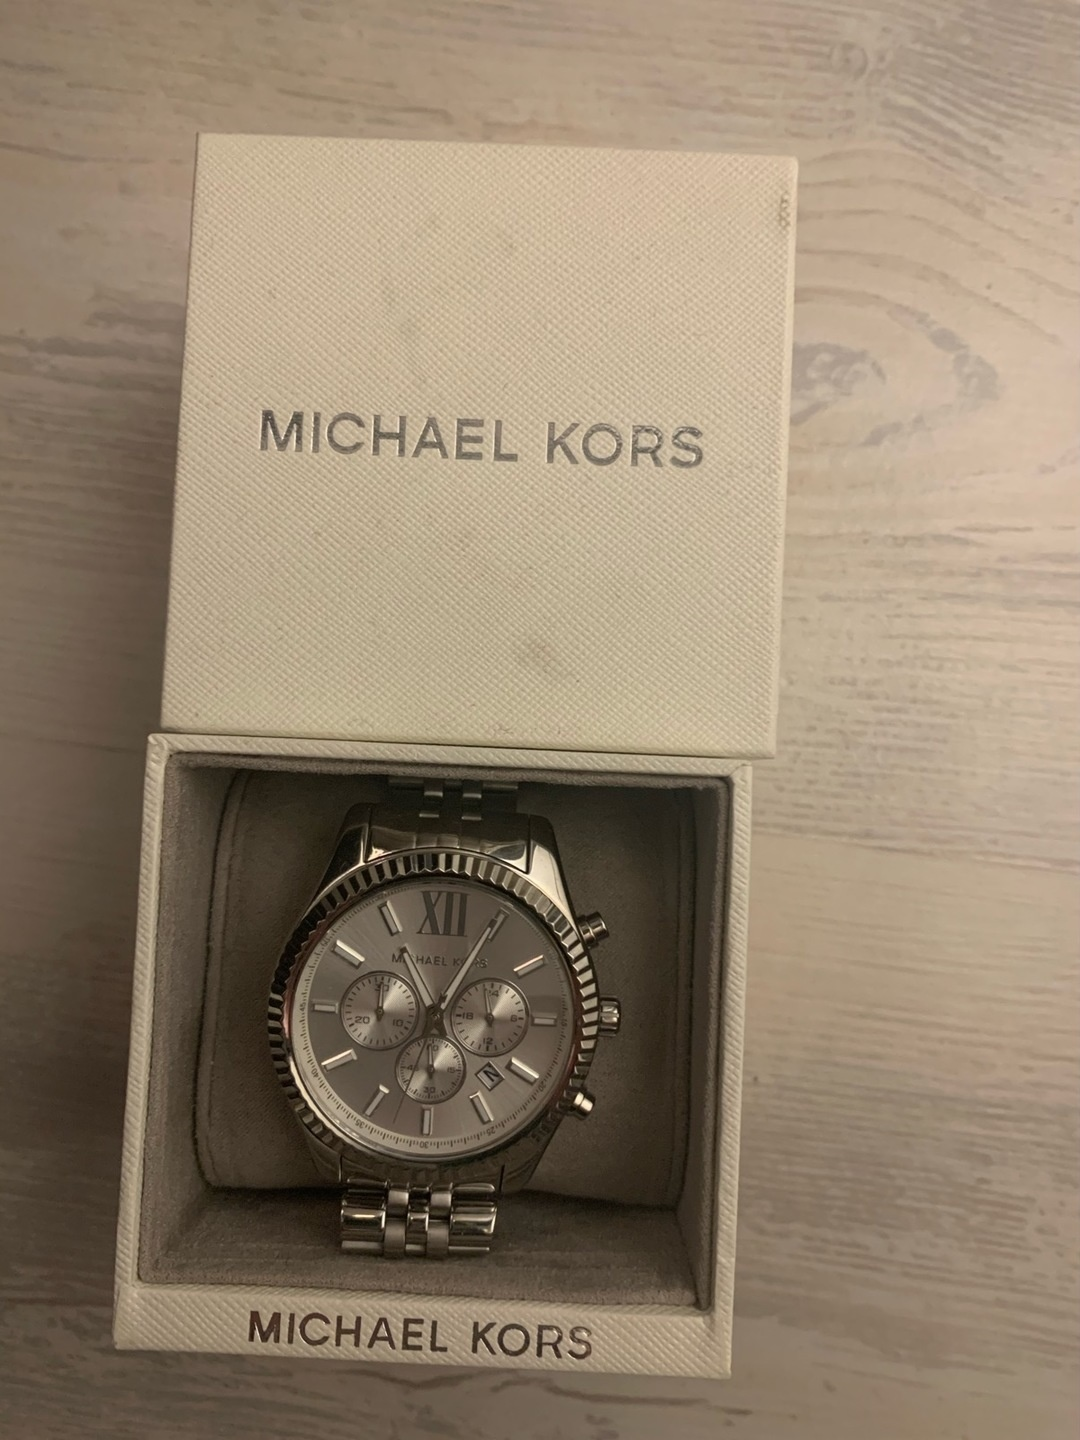 Women's jewellery & bracelets - MICHAEL KORS photo 1